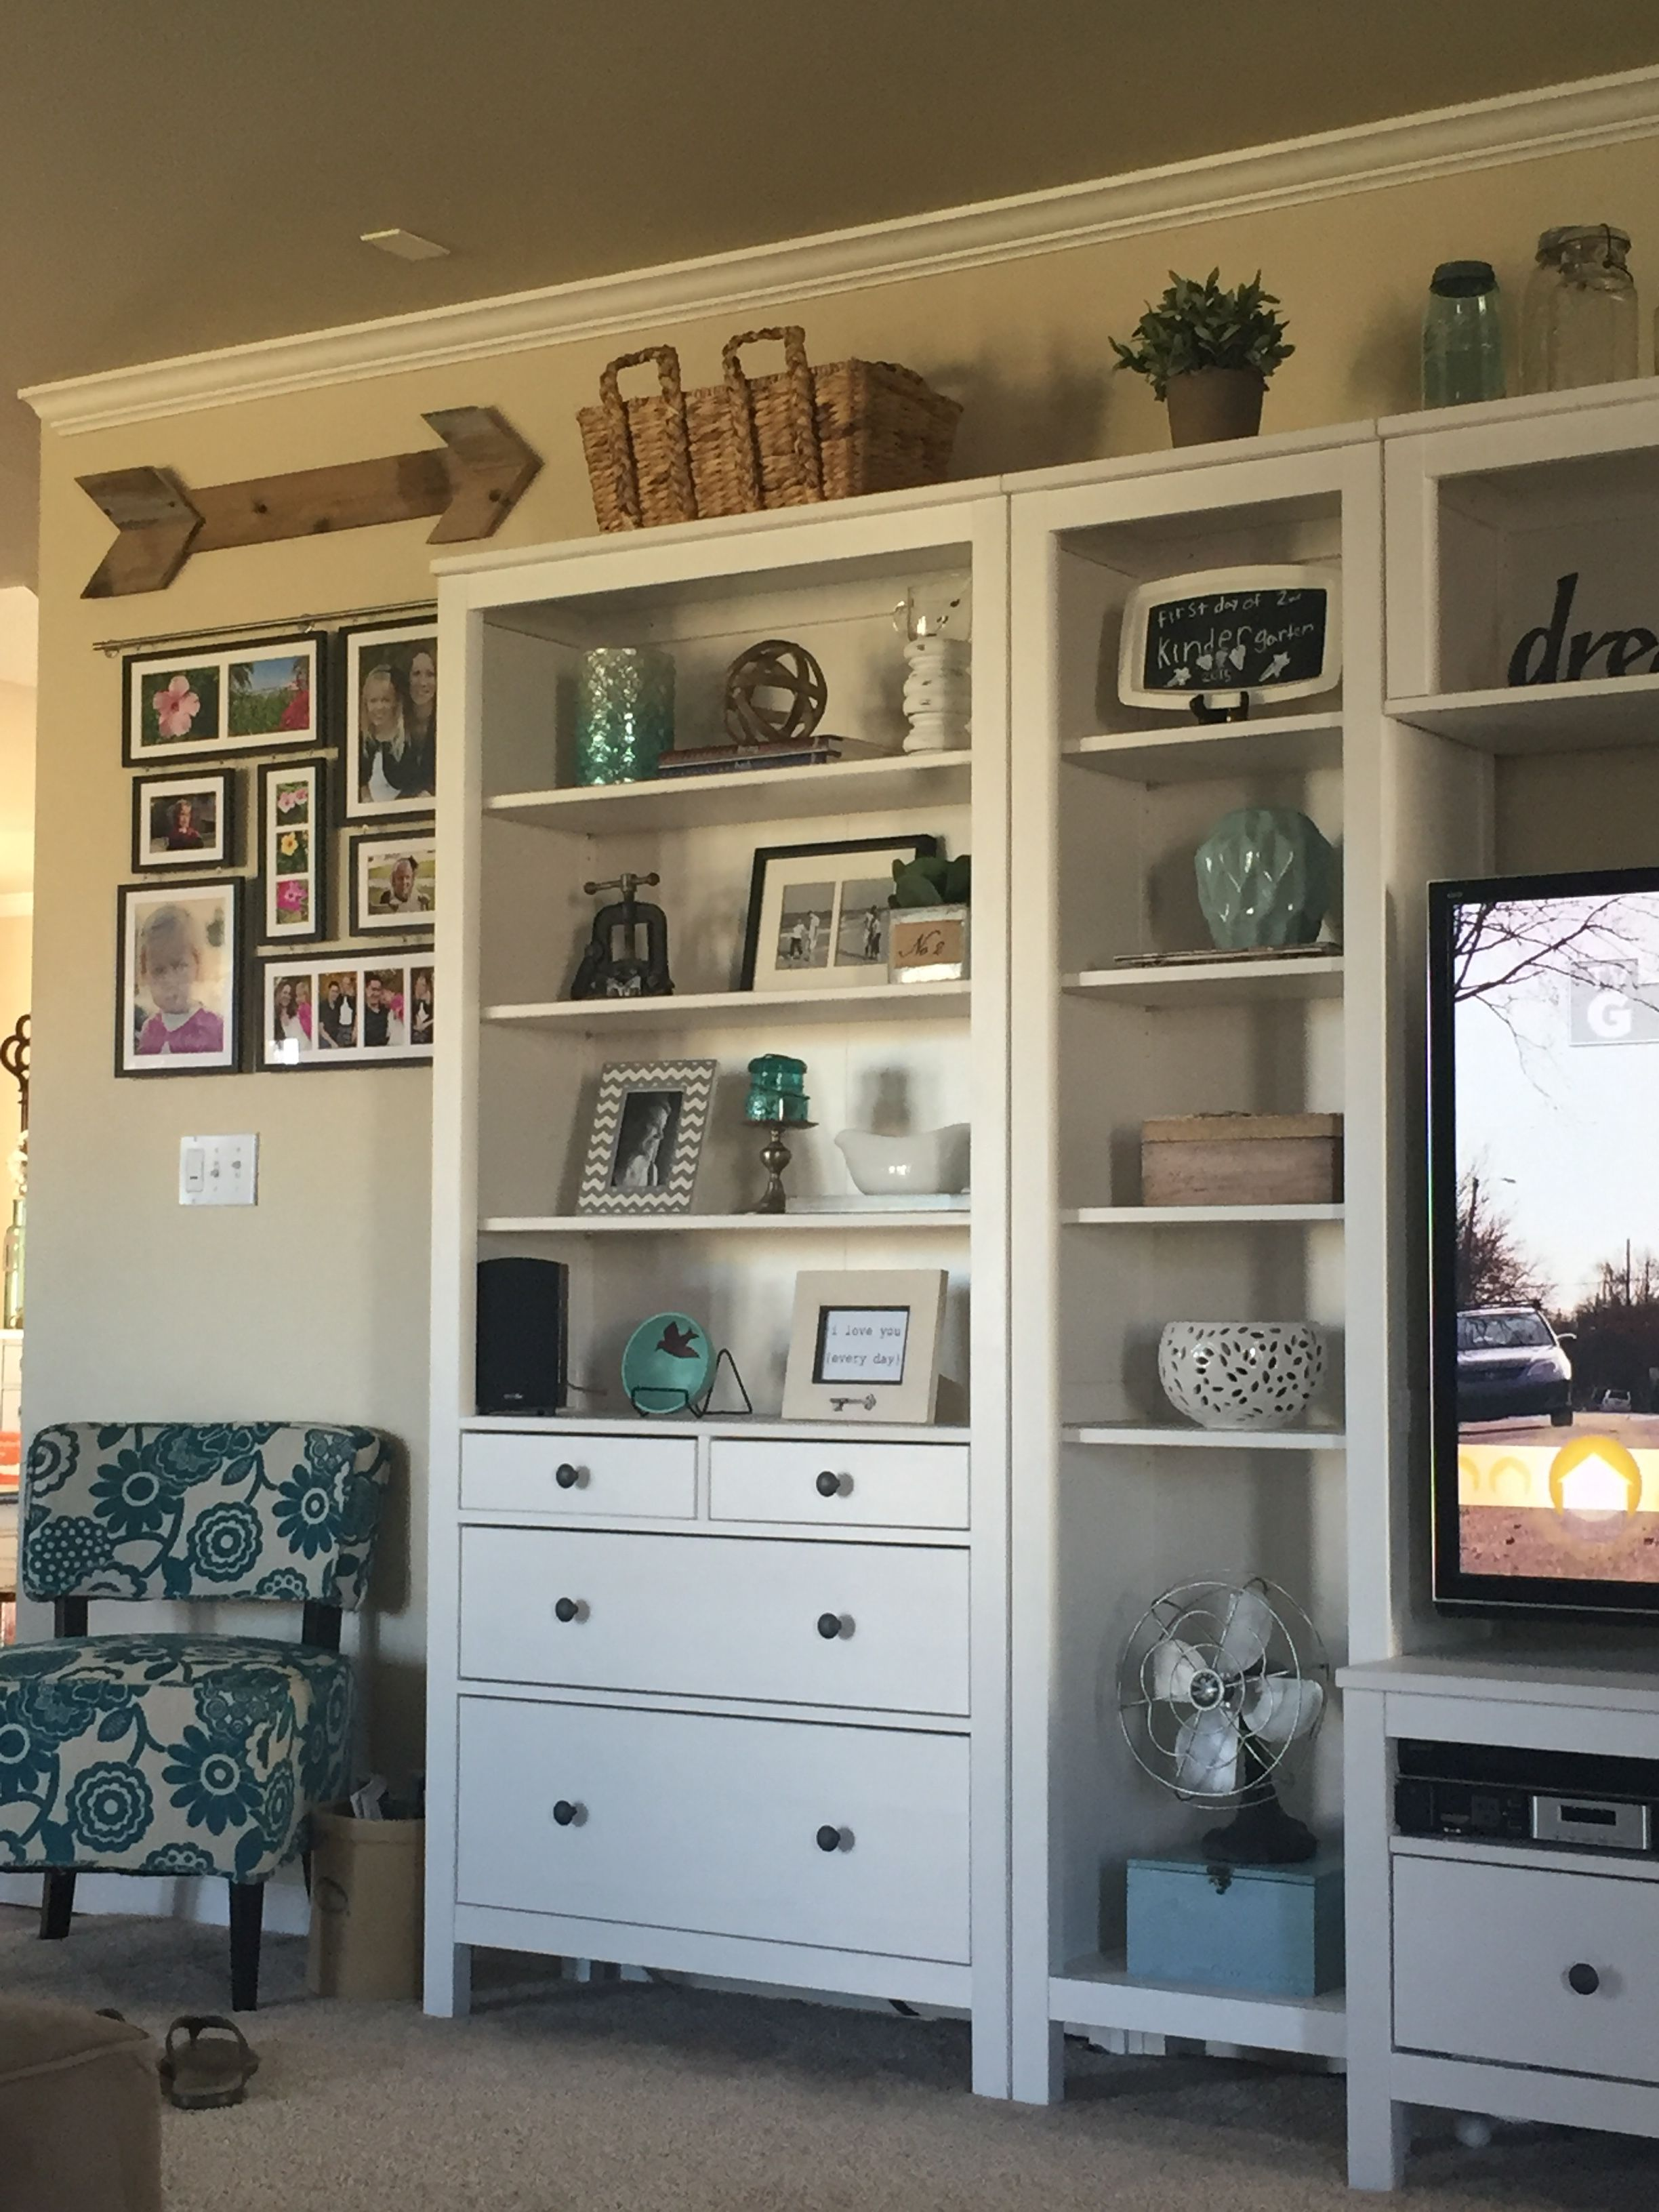 Ikea hemnes entertainment center in living room home sweet home pinterest sal n ikea - Sweet home muebles ...